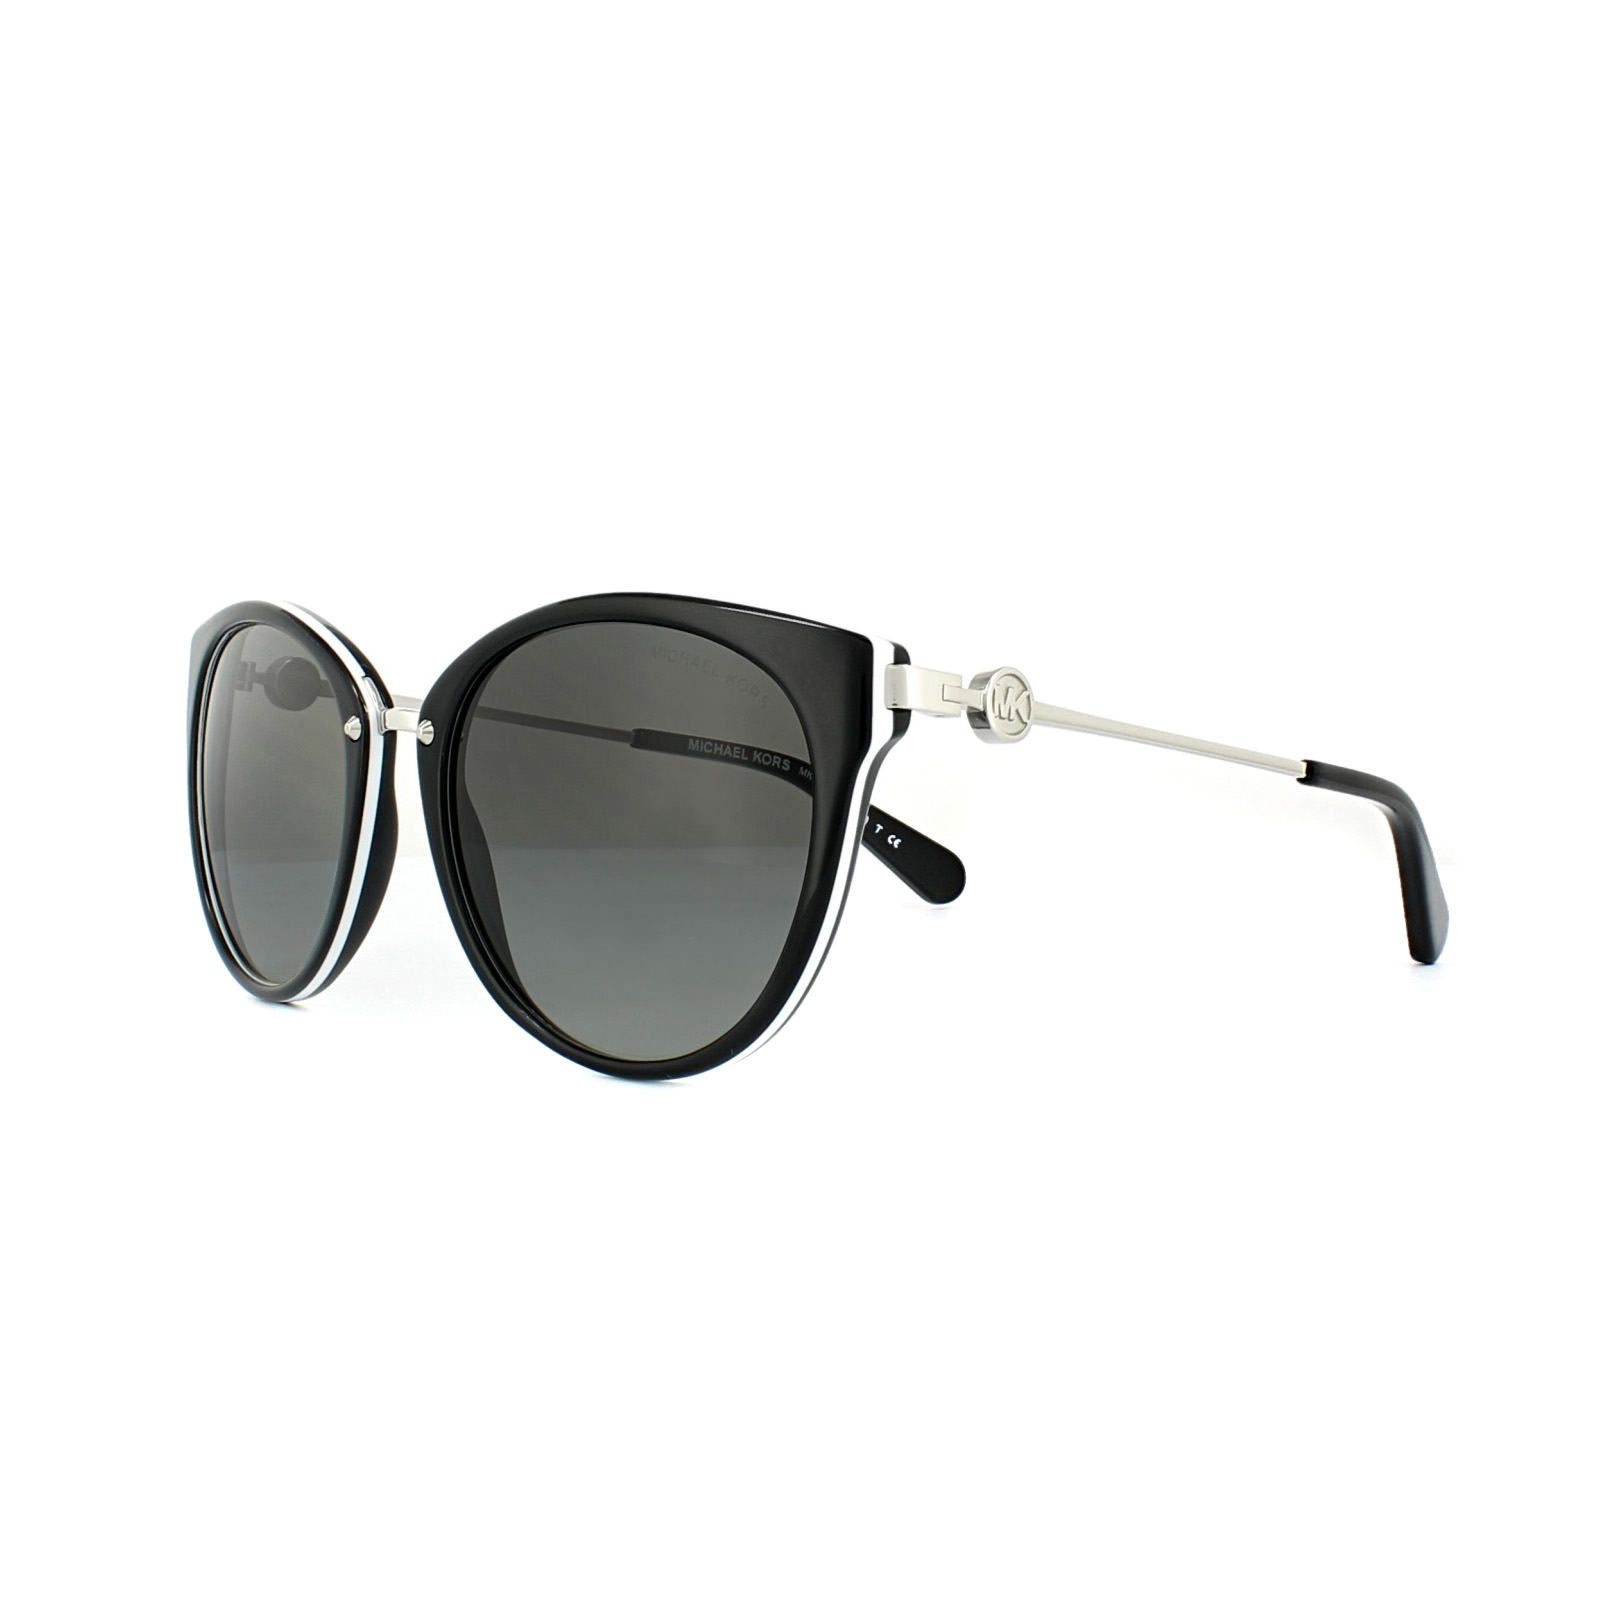 9b59b7991a616 Sentinel Michael Kors Sunglasses Abela III 6040 3129 11 Black White Grey  Gradient